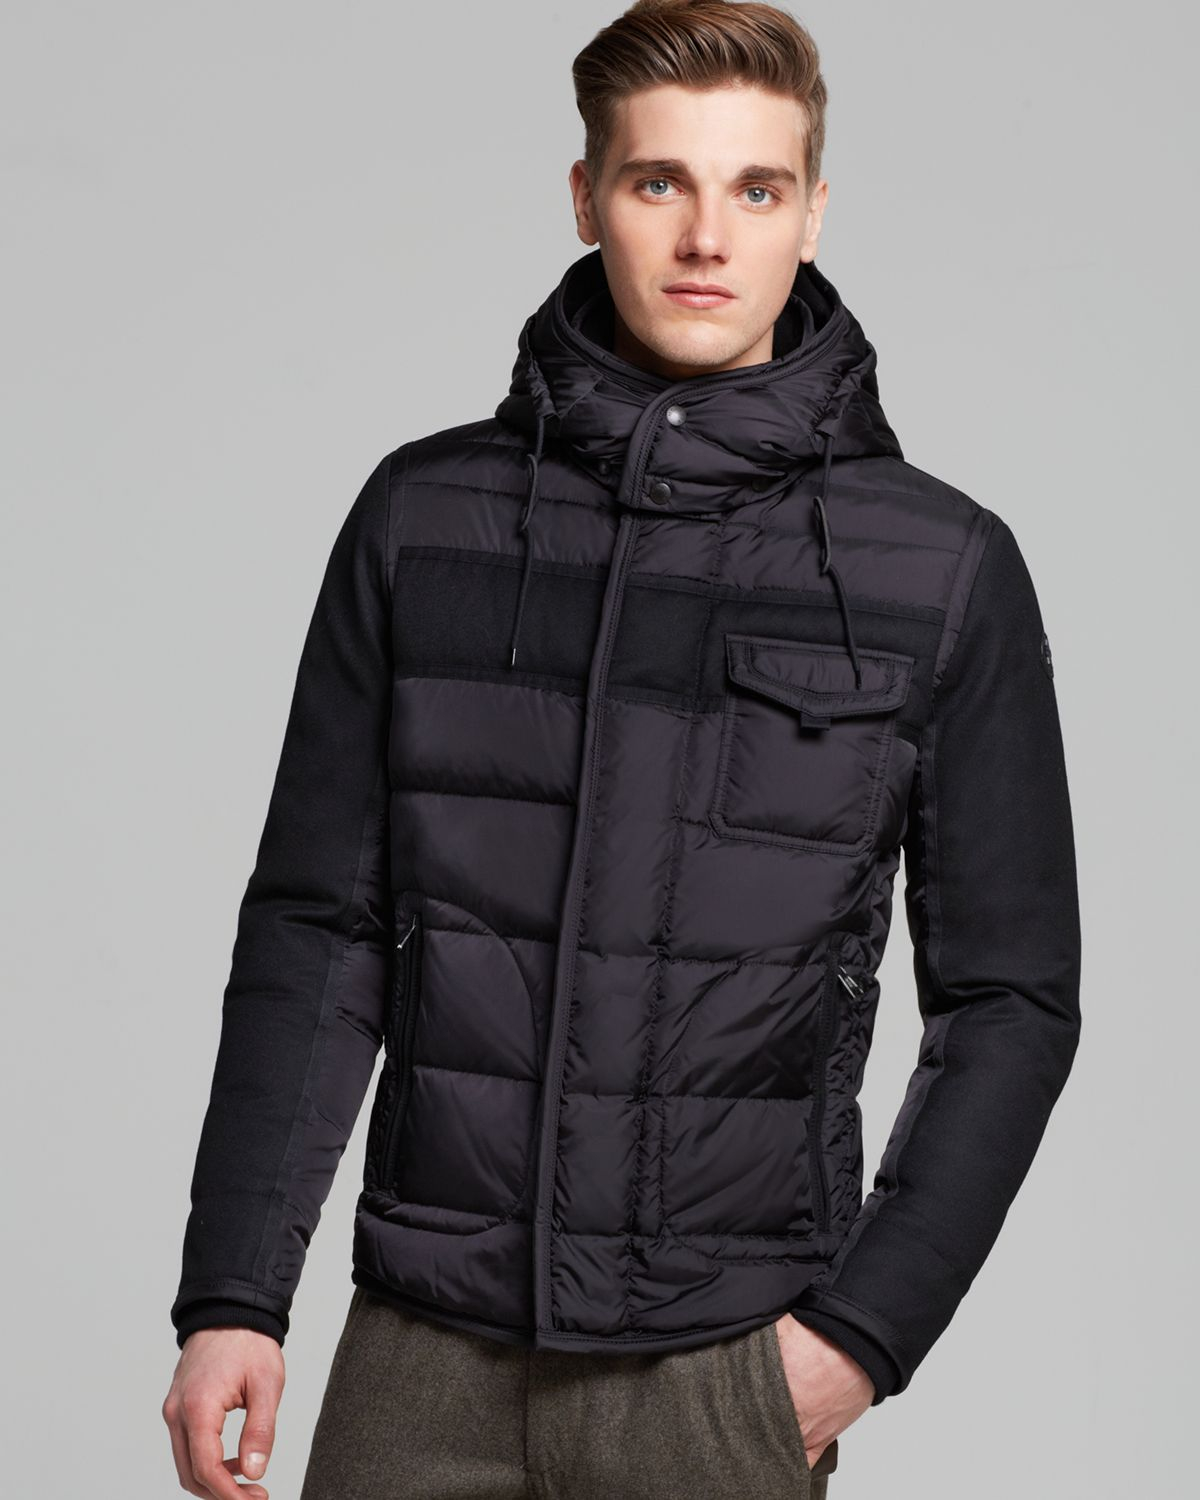 moncler ryan hooded down jacket in black for men lyst. Black Bedroom Furniture Sets. Home Design Ideas